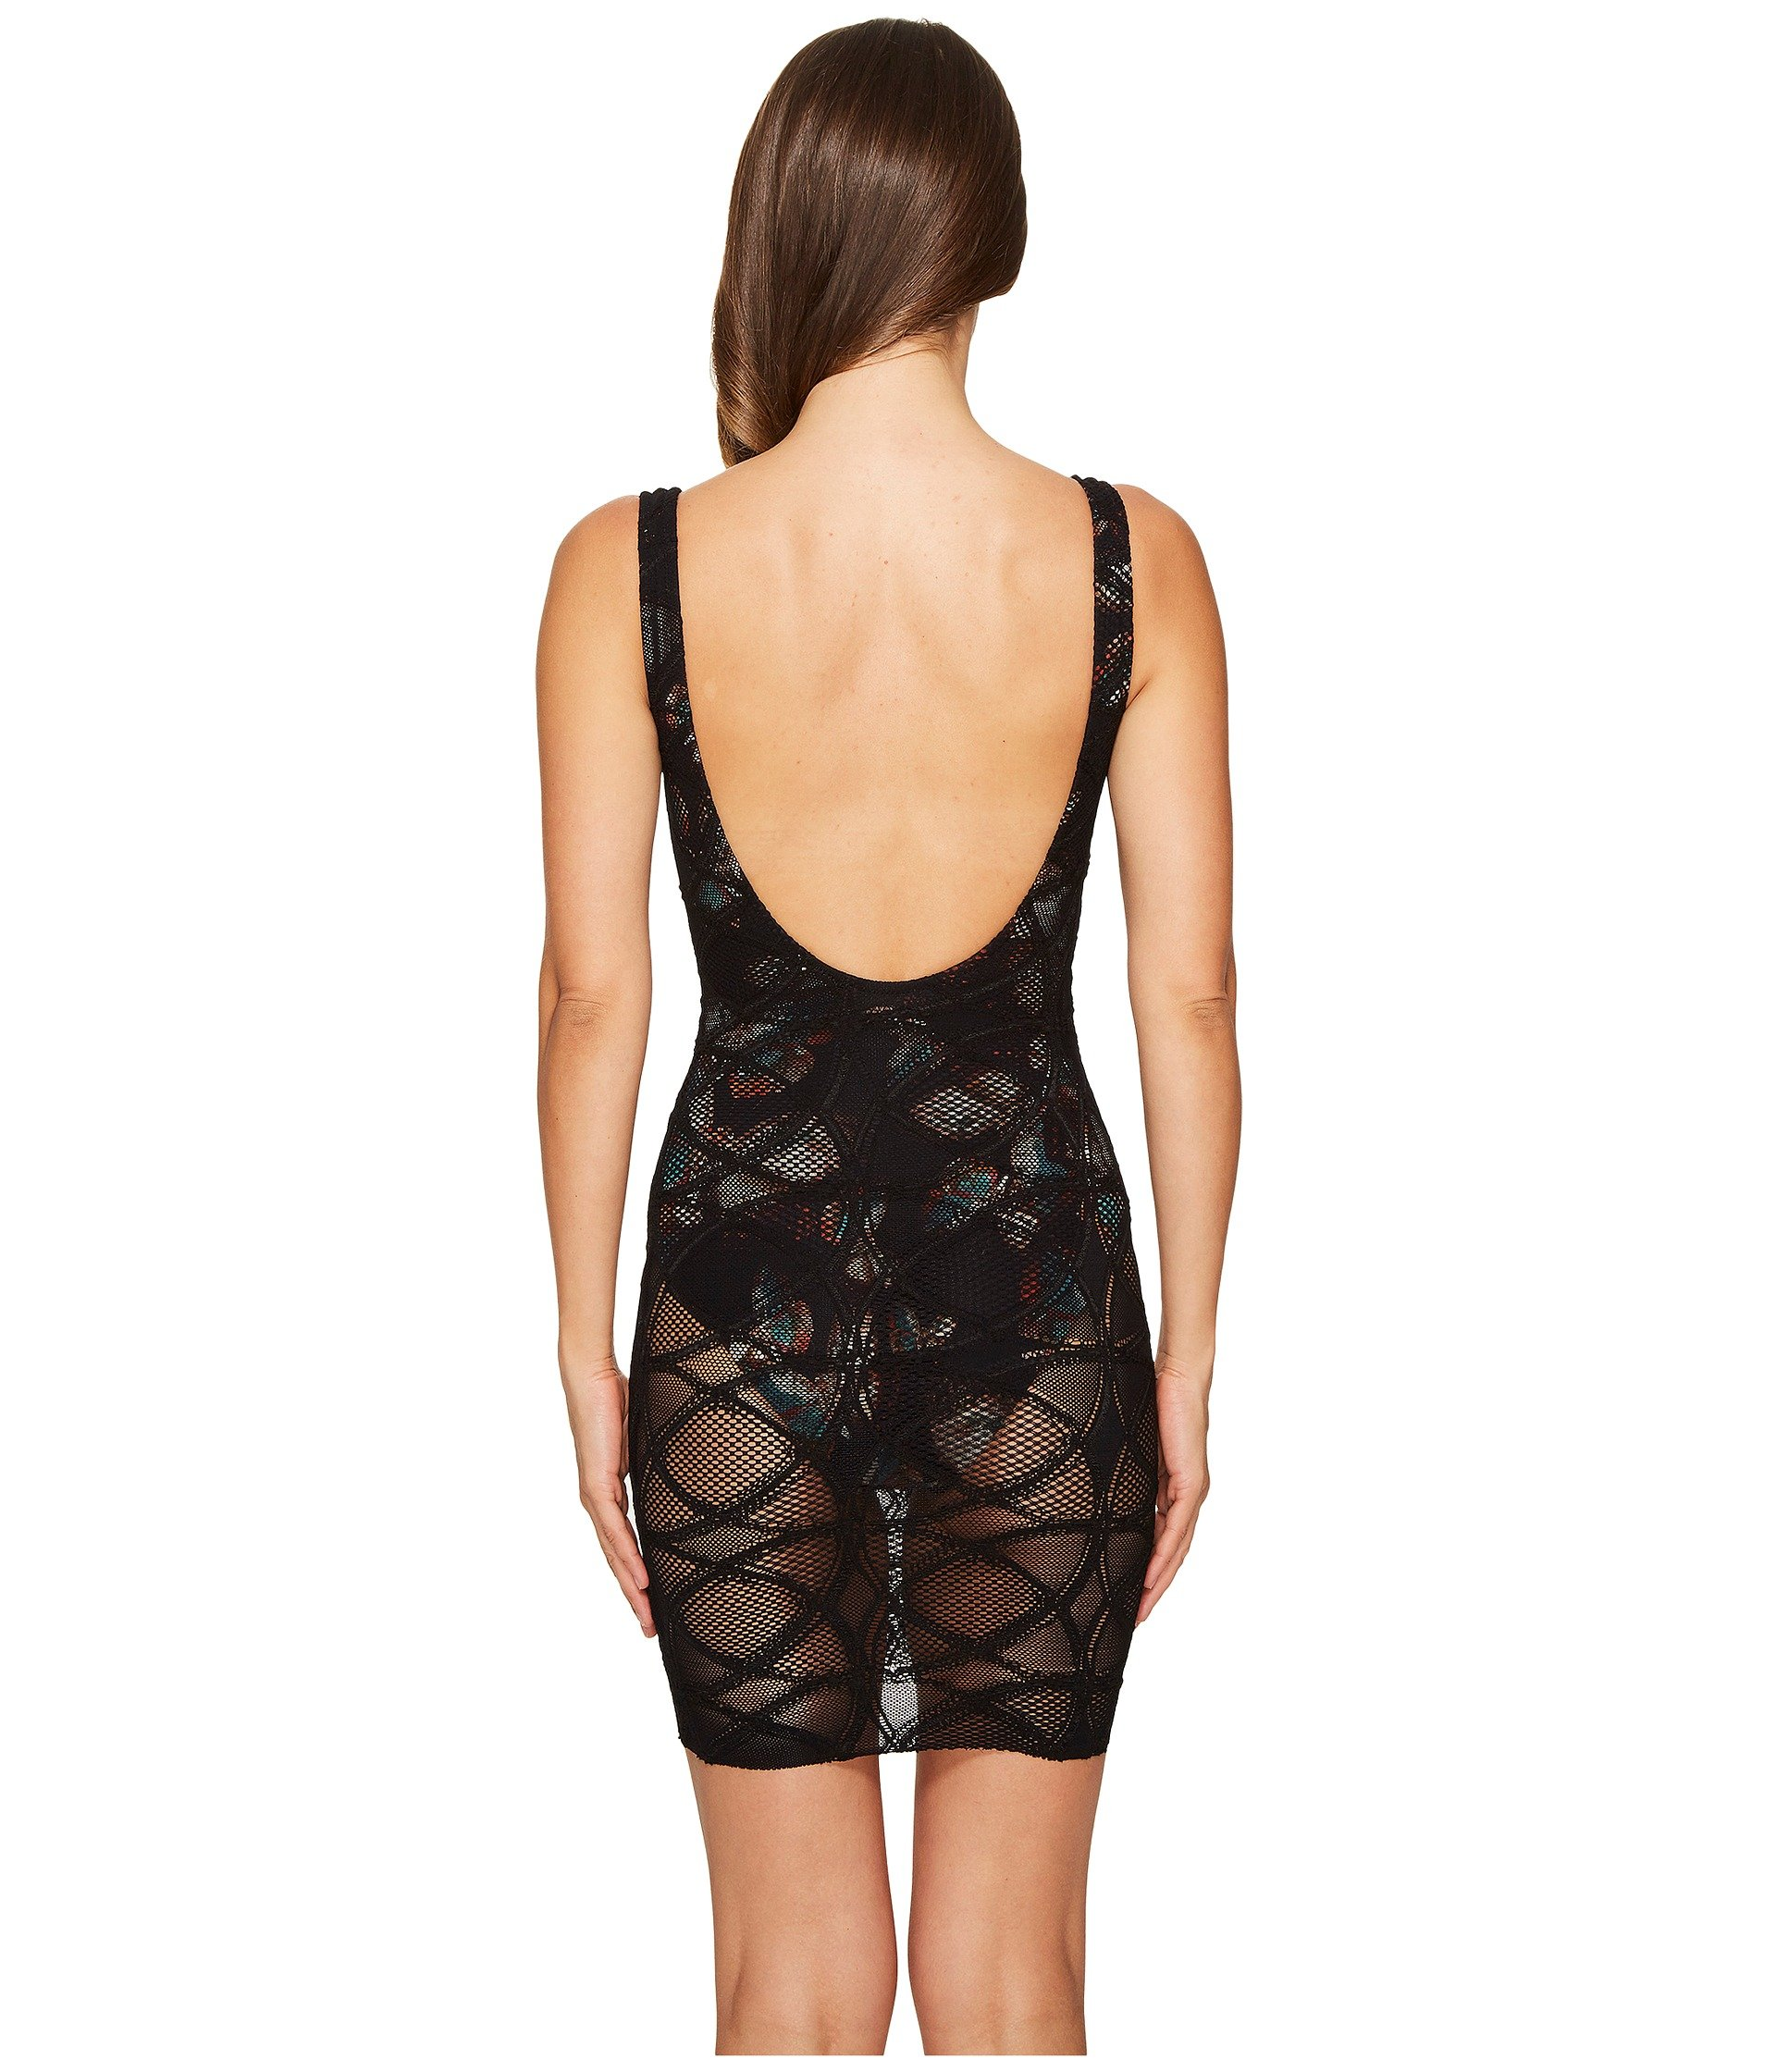 Buy low price, high quality swimming costumes lace with worldwide shipping on fascinatingnewsvv.ml